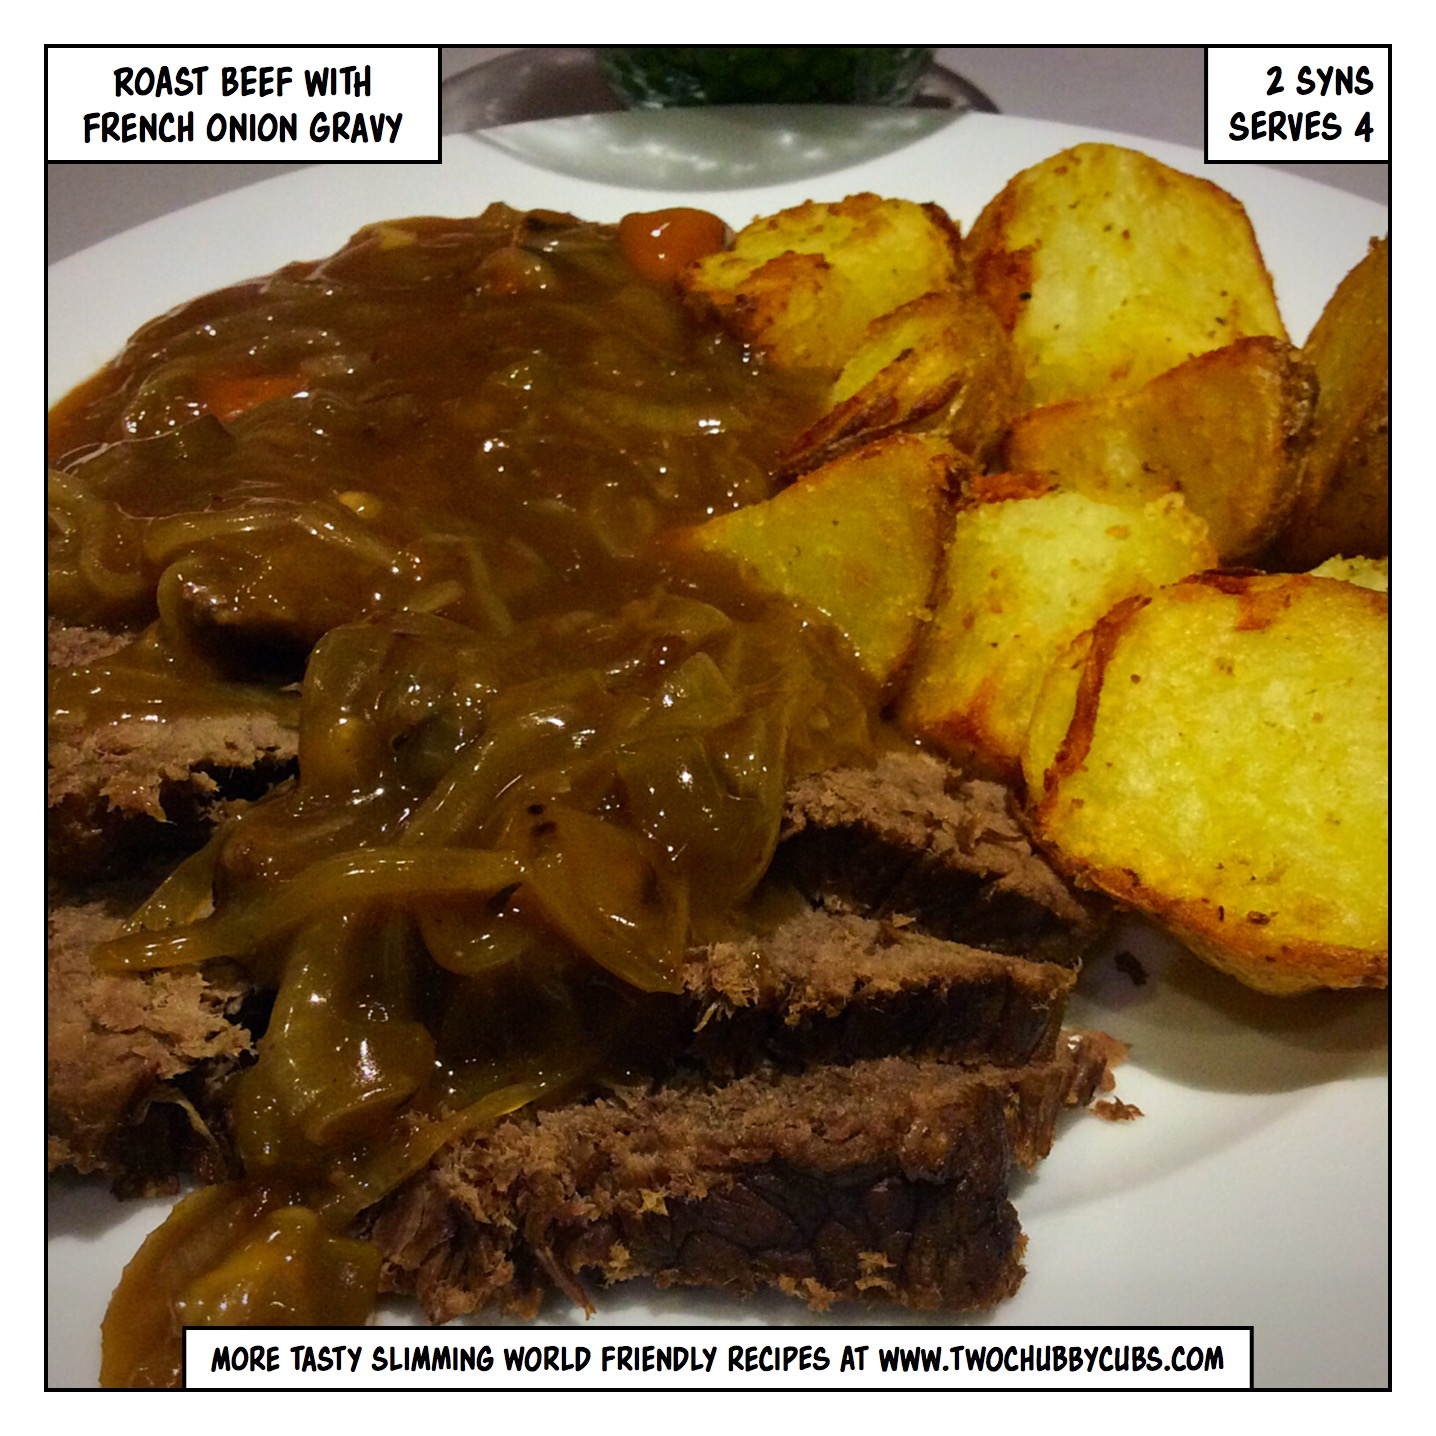 Roast Beef With French Onion Gravy Slimming World Friendly